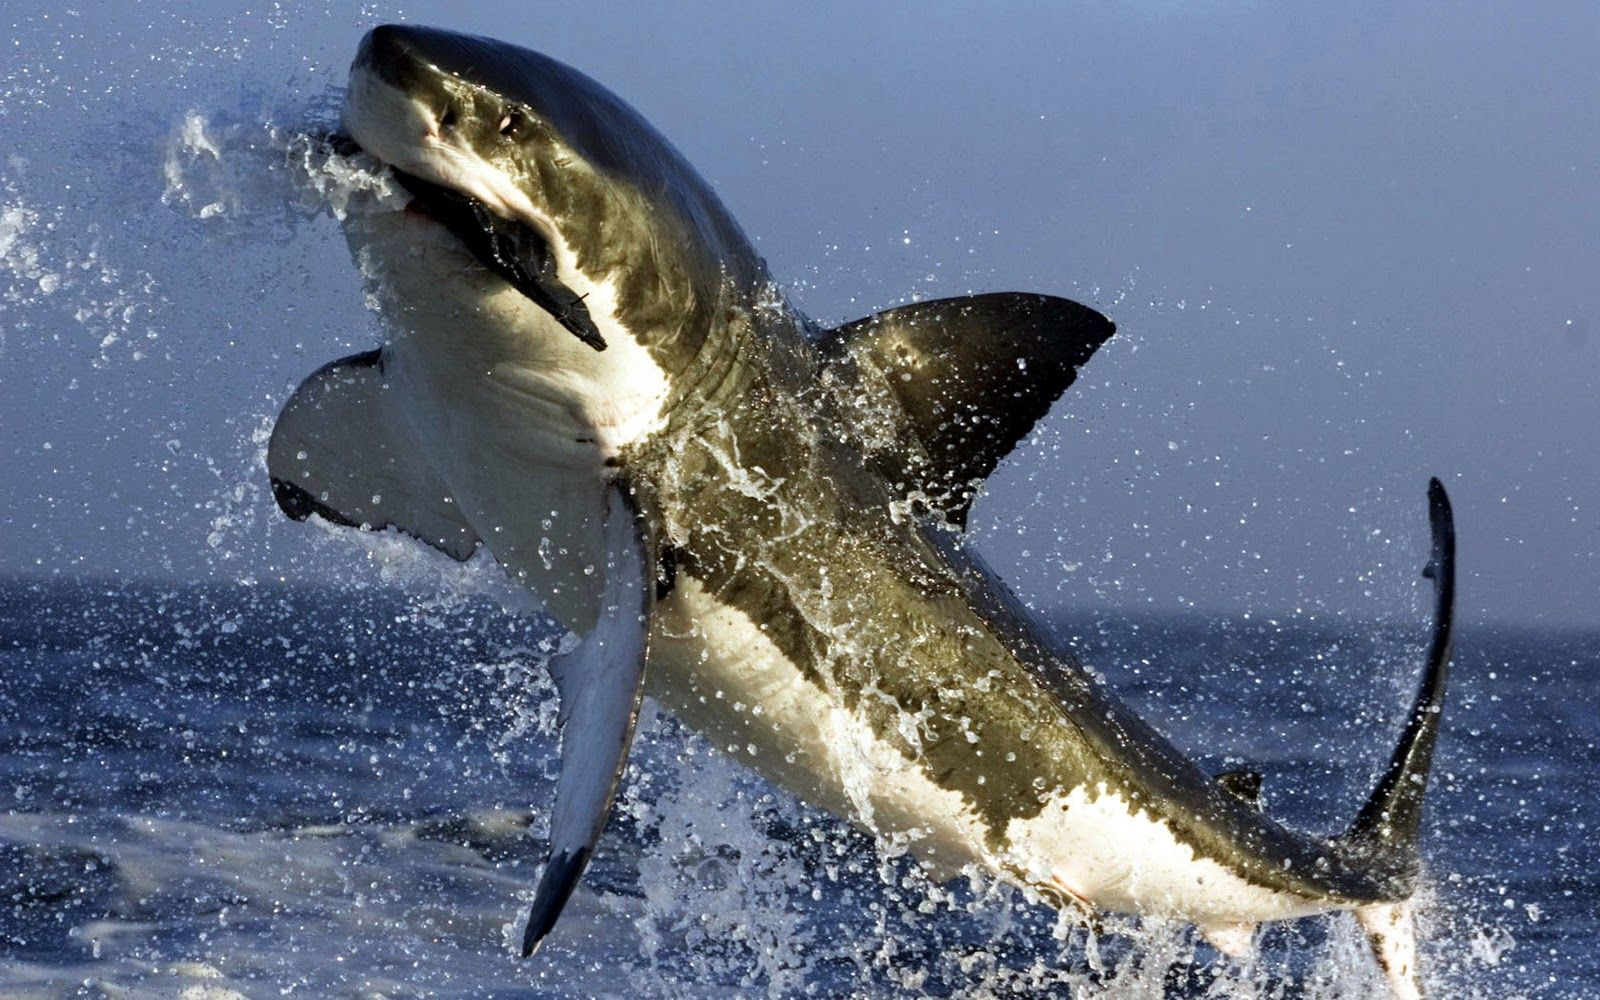 Great white shark attacks seal reply